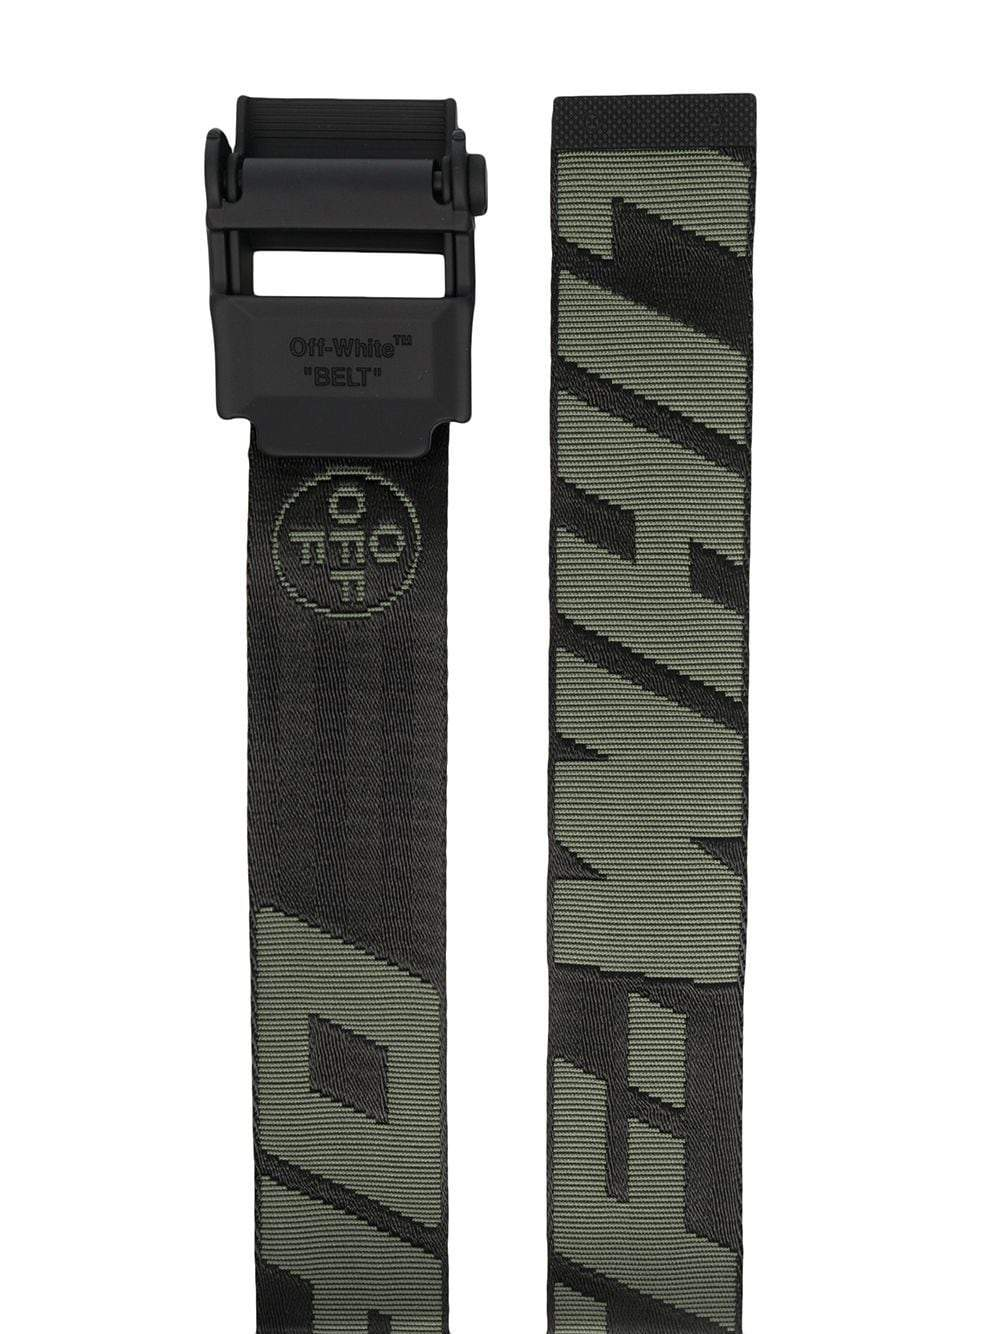 OFF-WHITE 2.0 Industrial Belt Green